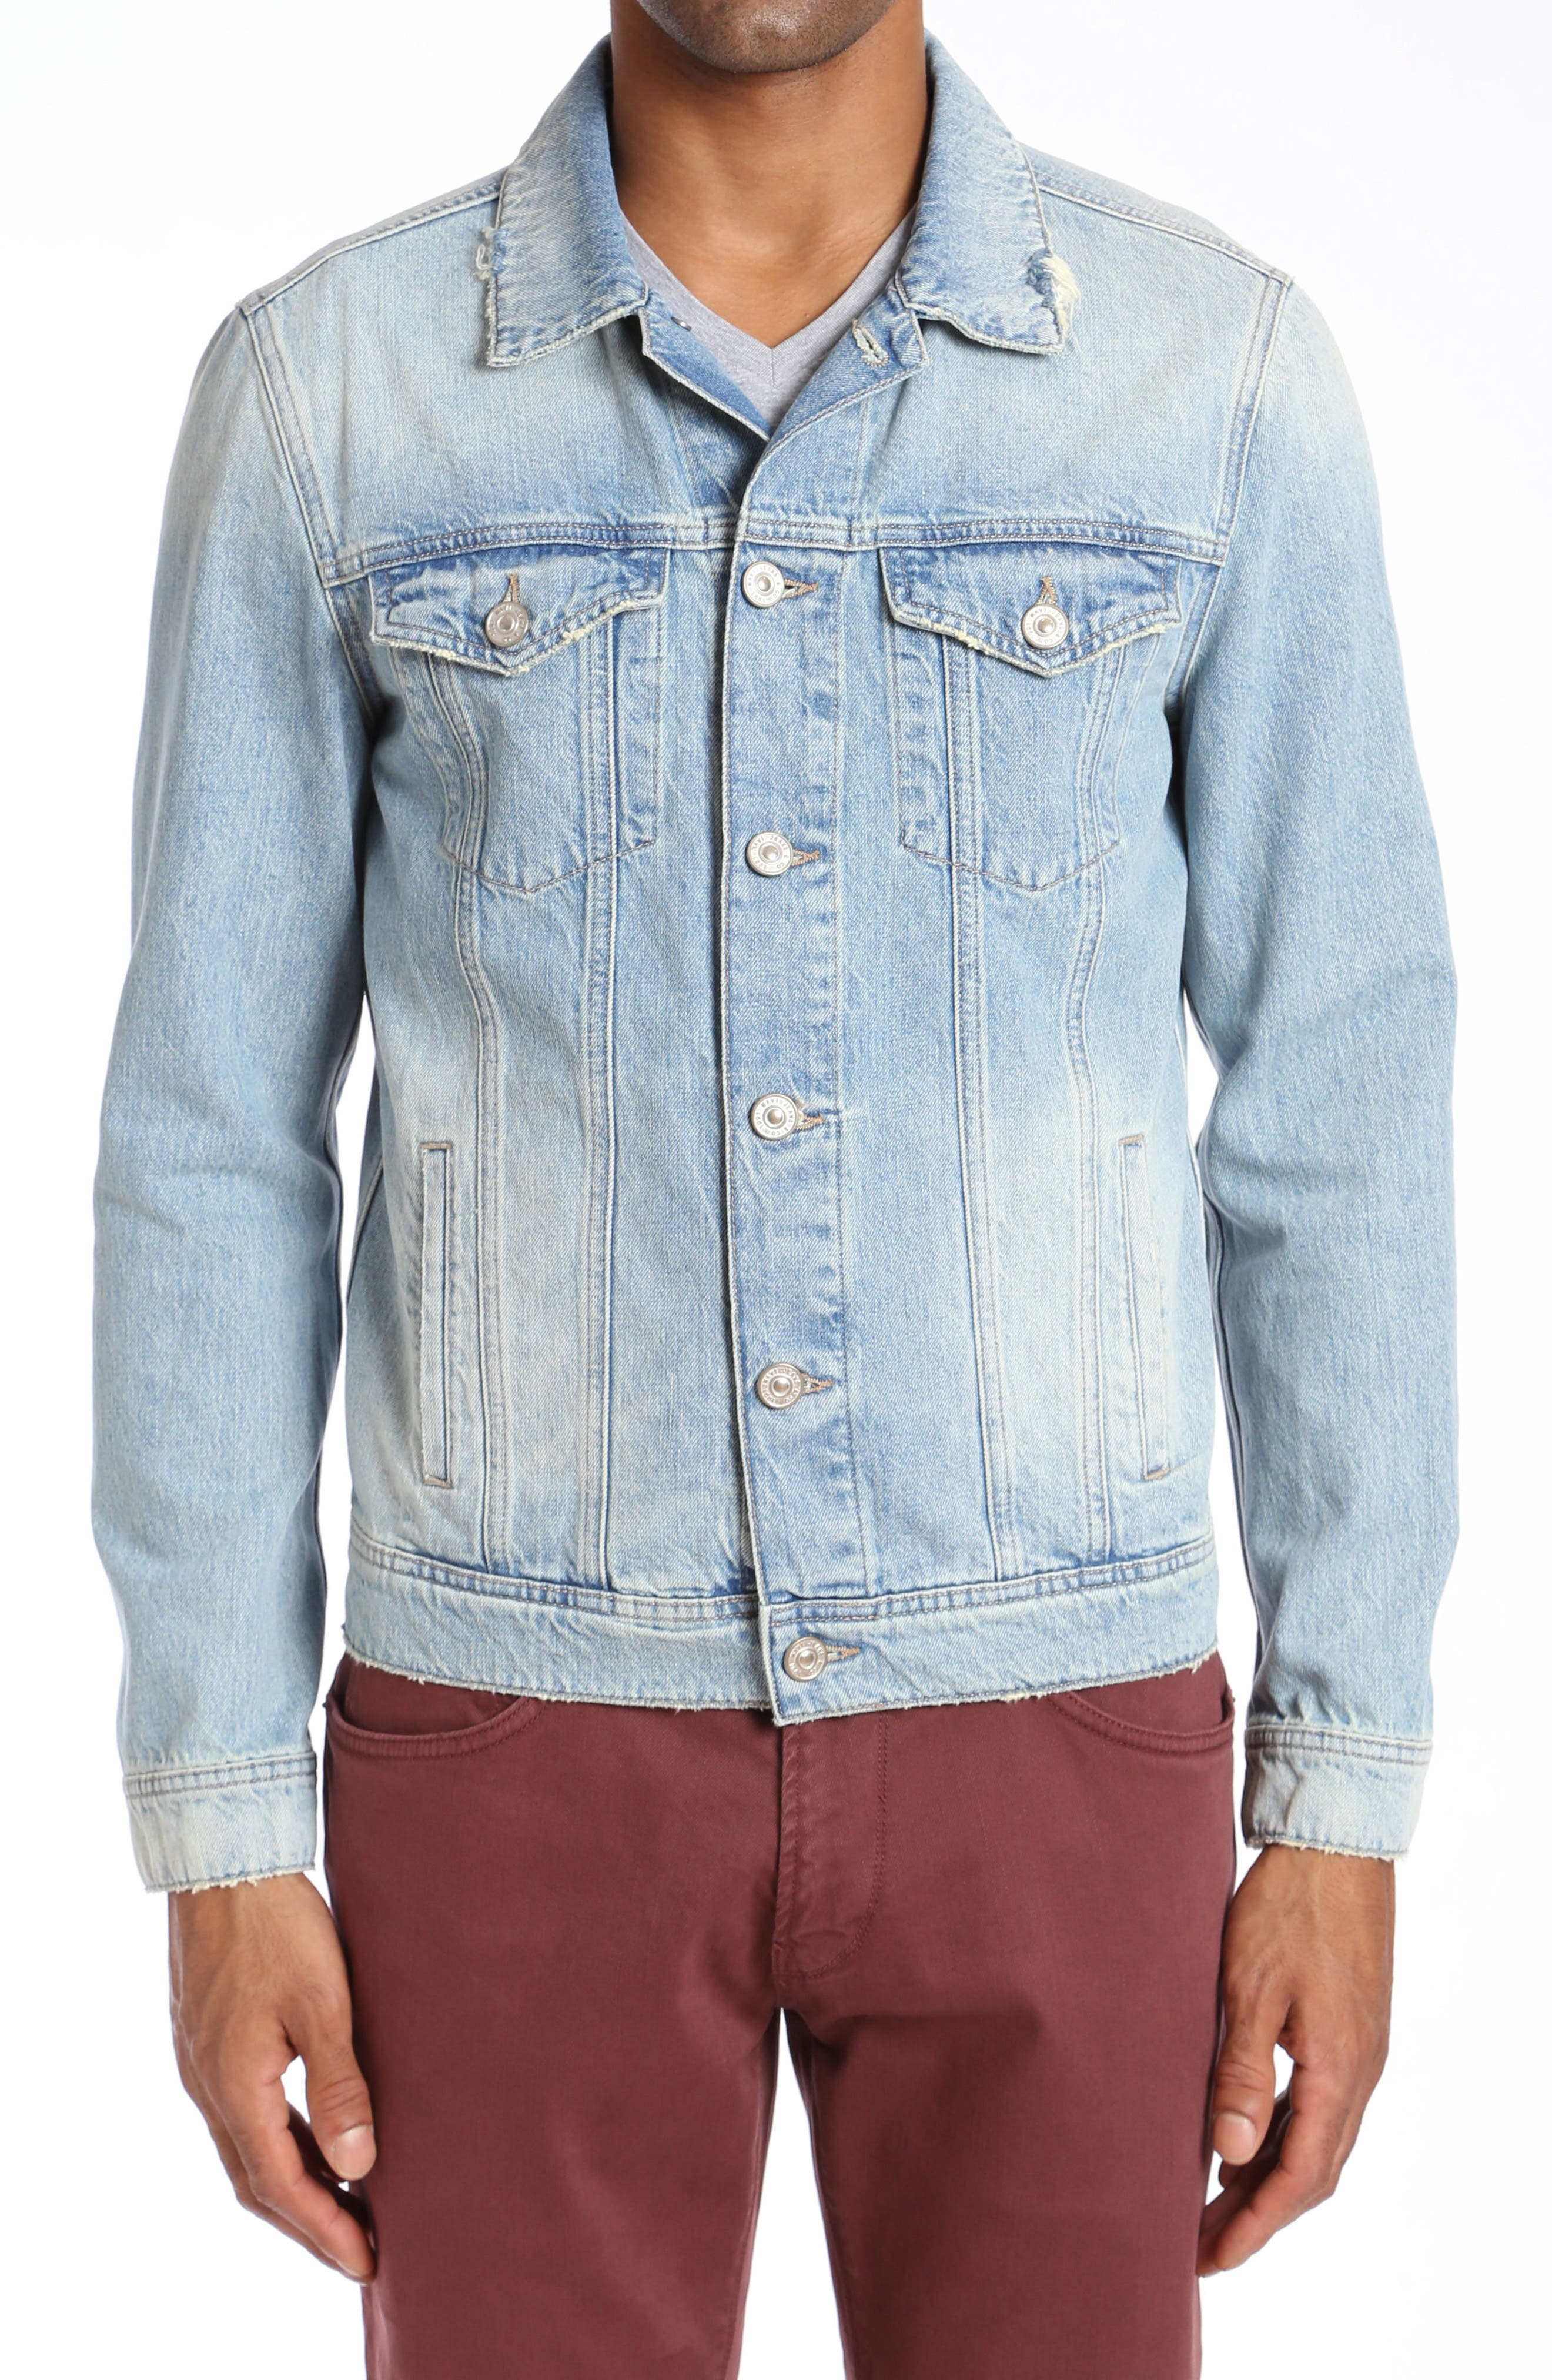 Frank Denim Jacket,                             Main thumbnail 1, color,                             BLEACH VINTAGE RIGID